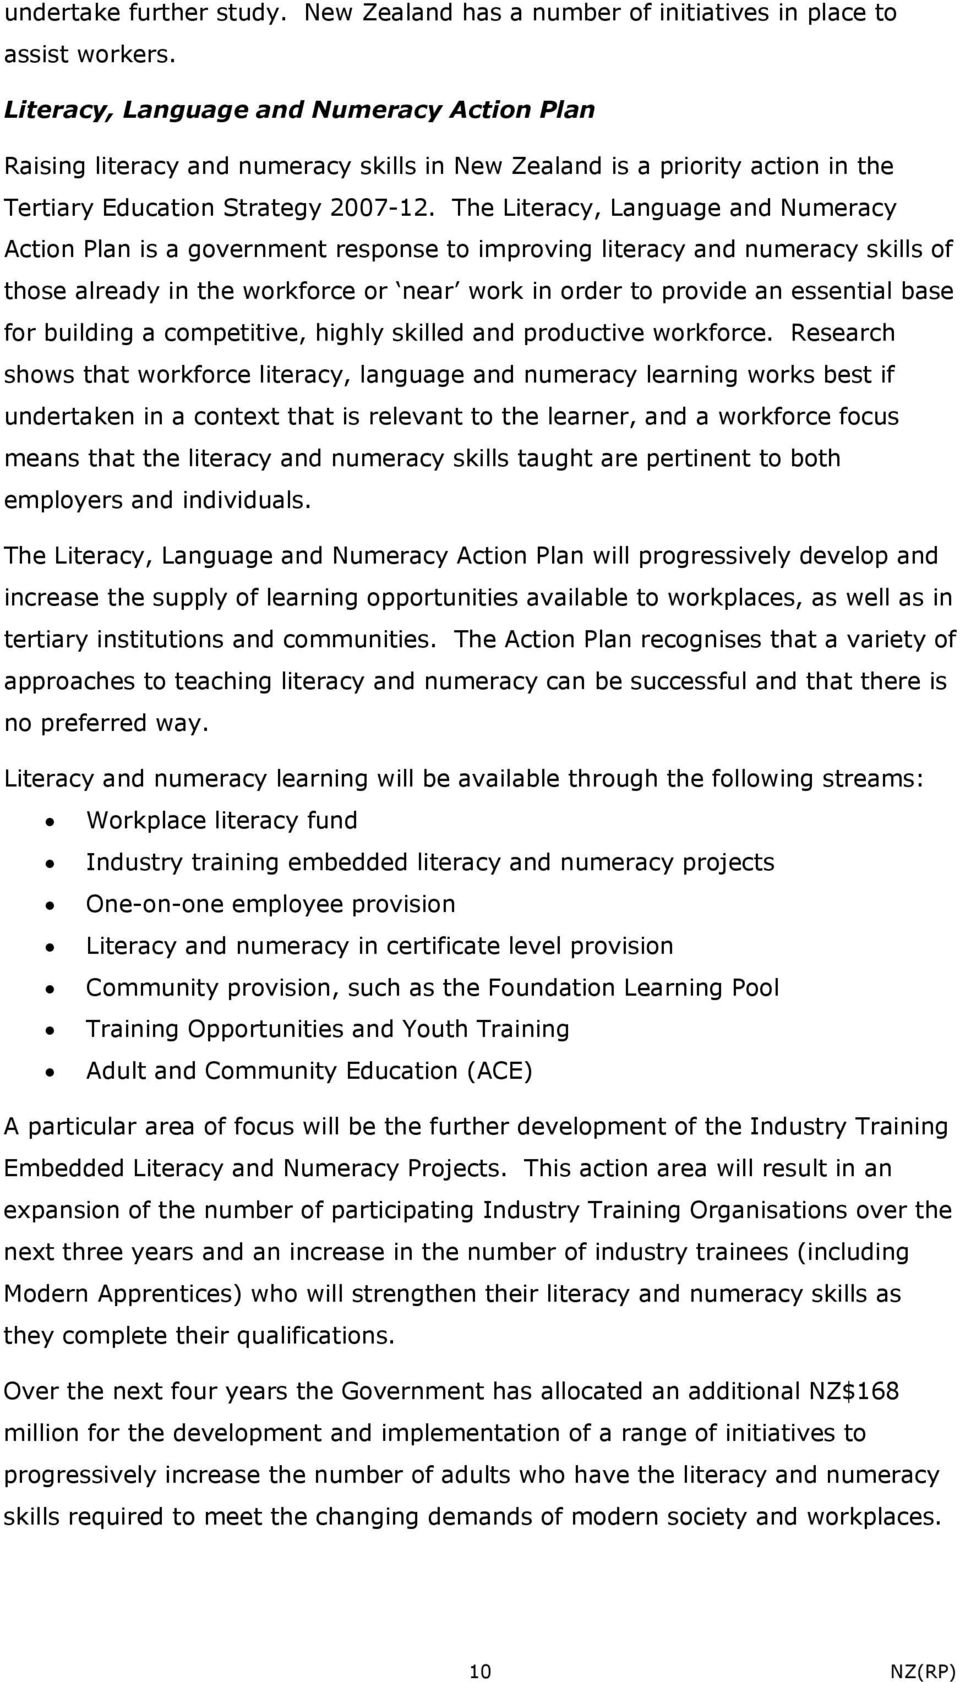 The Literacy, Language and Numeracy Action Plan is a government response to improving literacy and numeracy skills of those already in the workforce or near work in order to provide an essential base